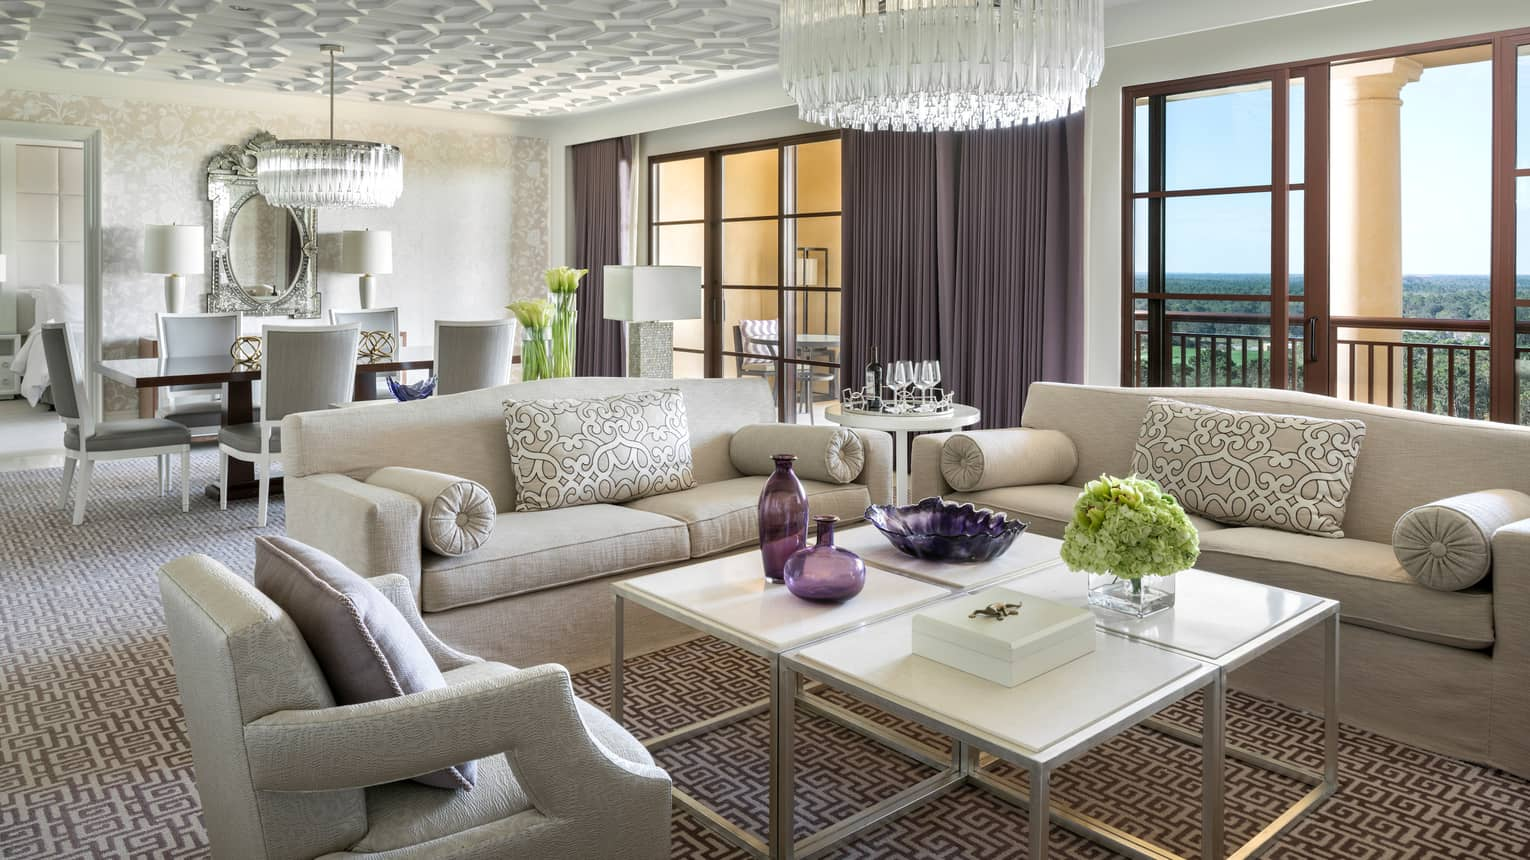 Grand Suite white sofas, armchair around coffee table with purple vases under crystal chandelier, sunny windows